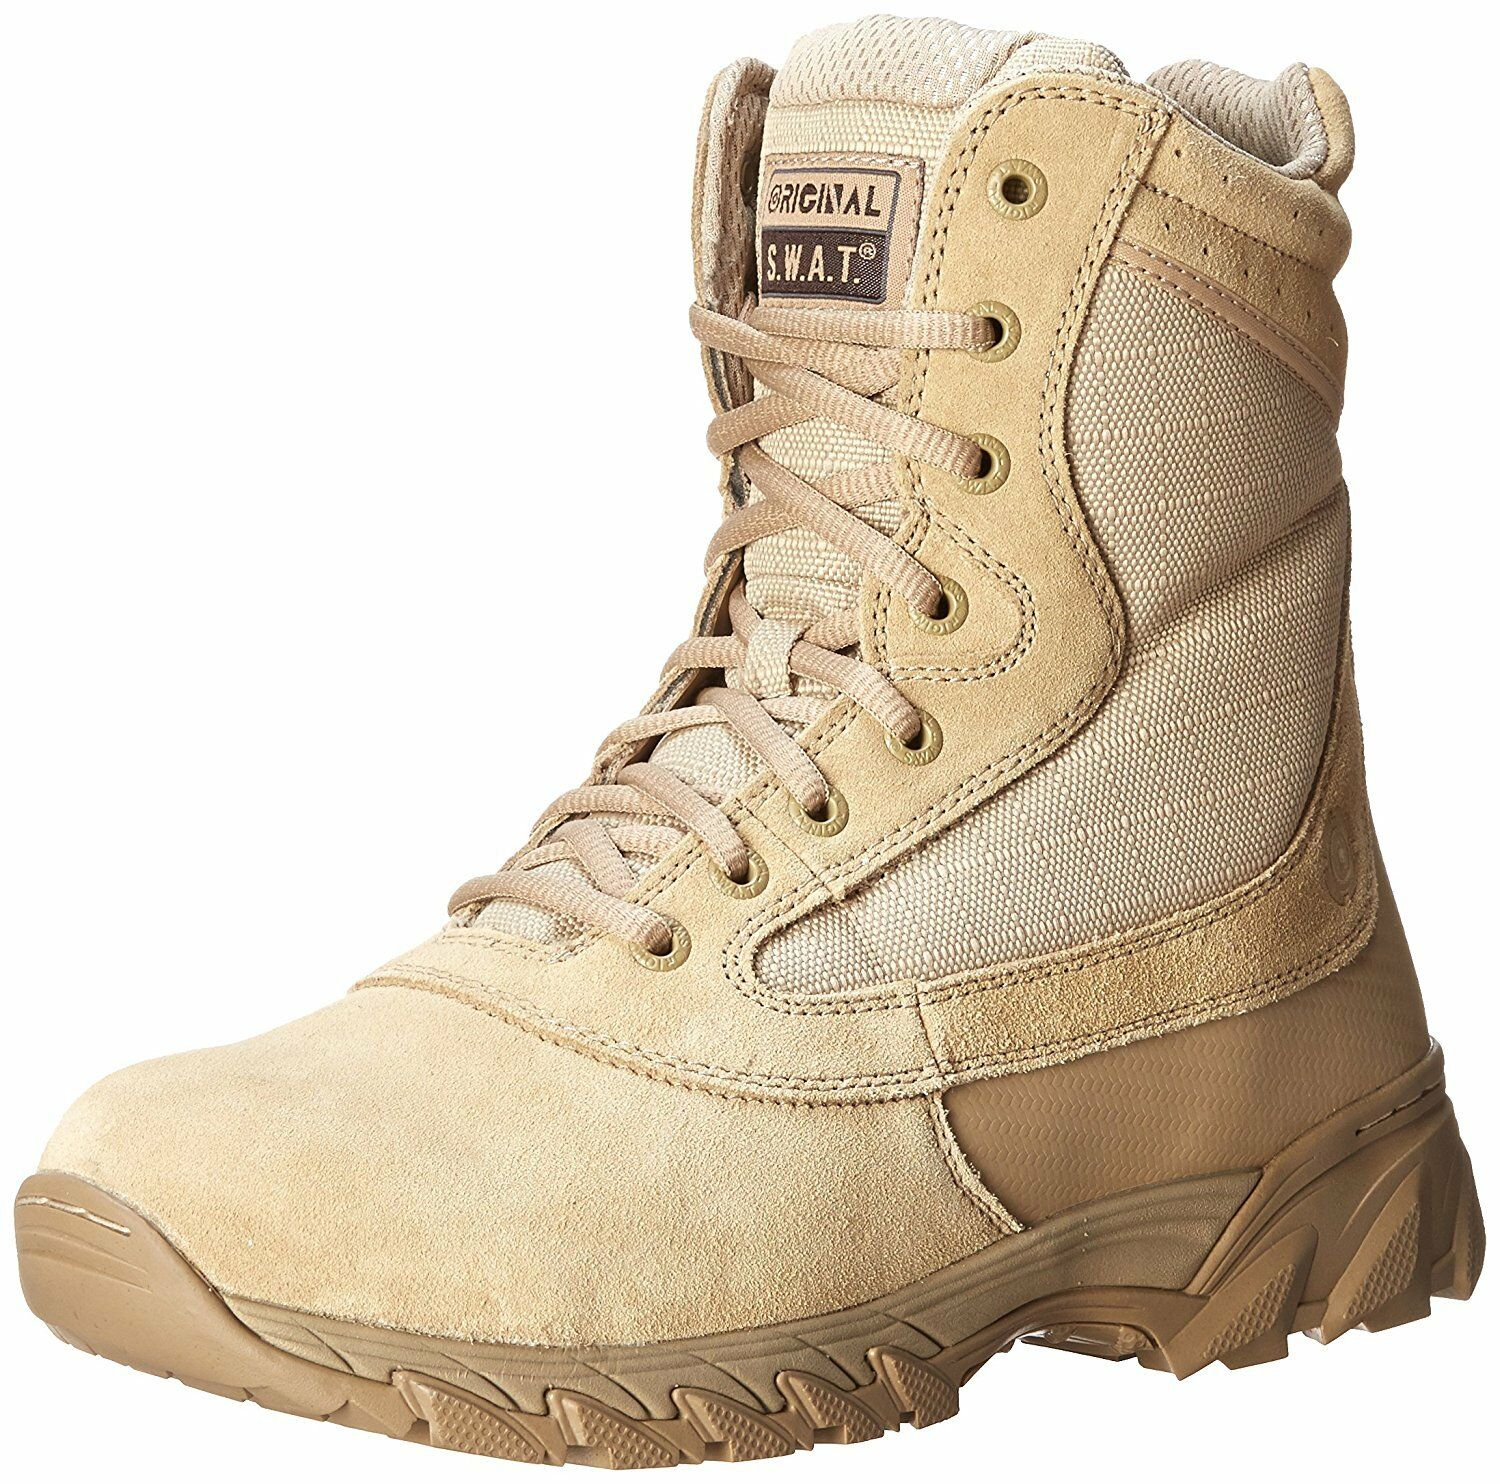 Original S.W.A.T. 131202 Men's Chase 9 Inch Side Zip  Tactical Boot, Tan  save up to 30-50% off